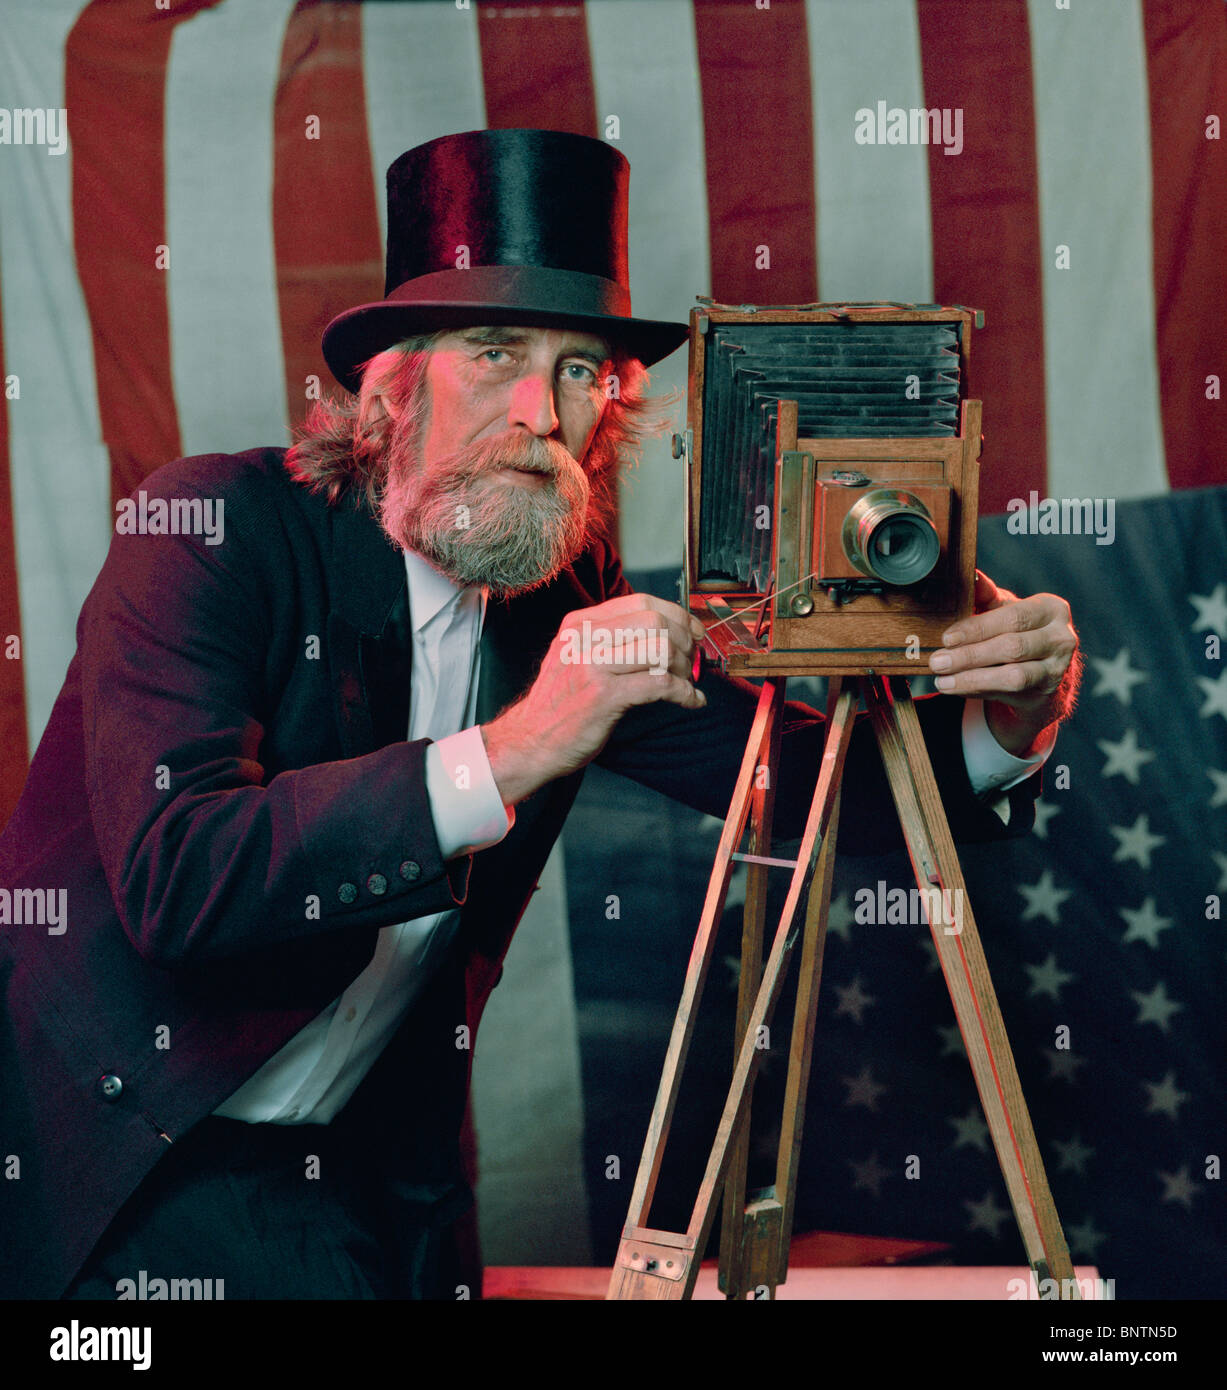 Image result for old timey photographer beard